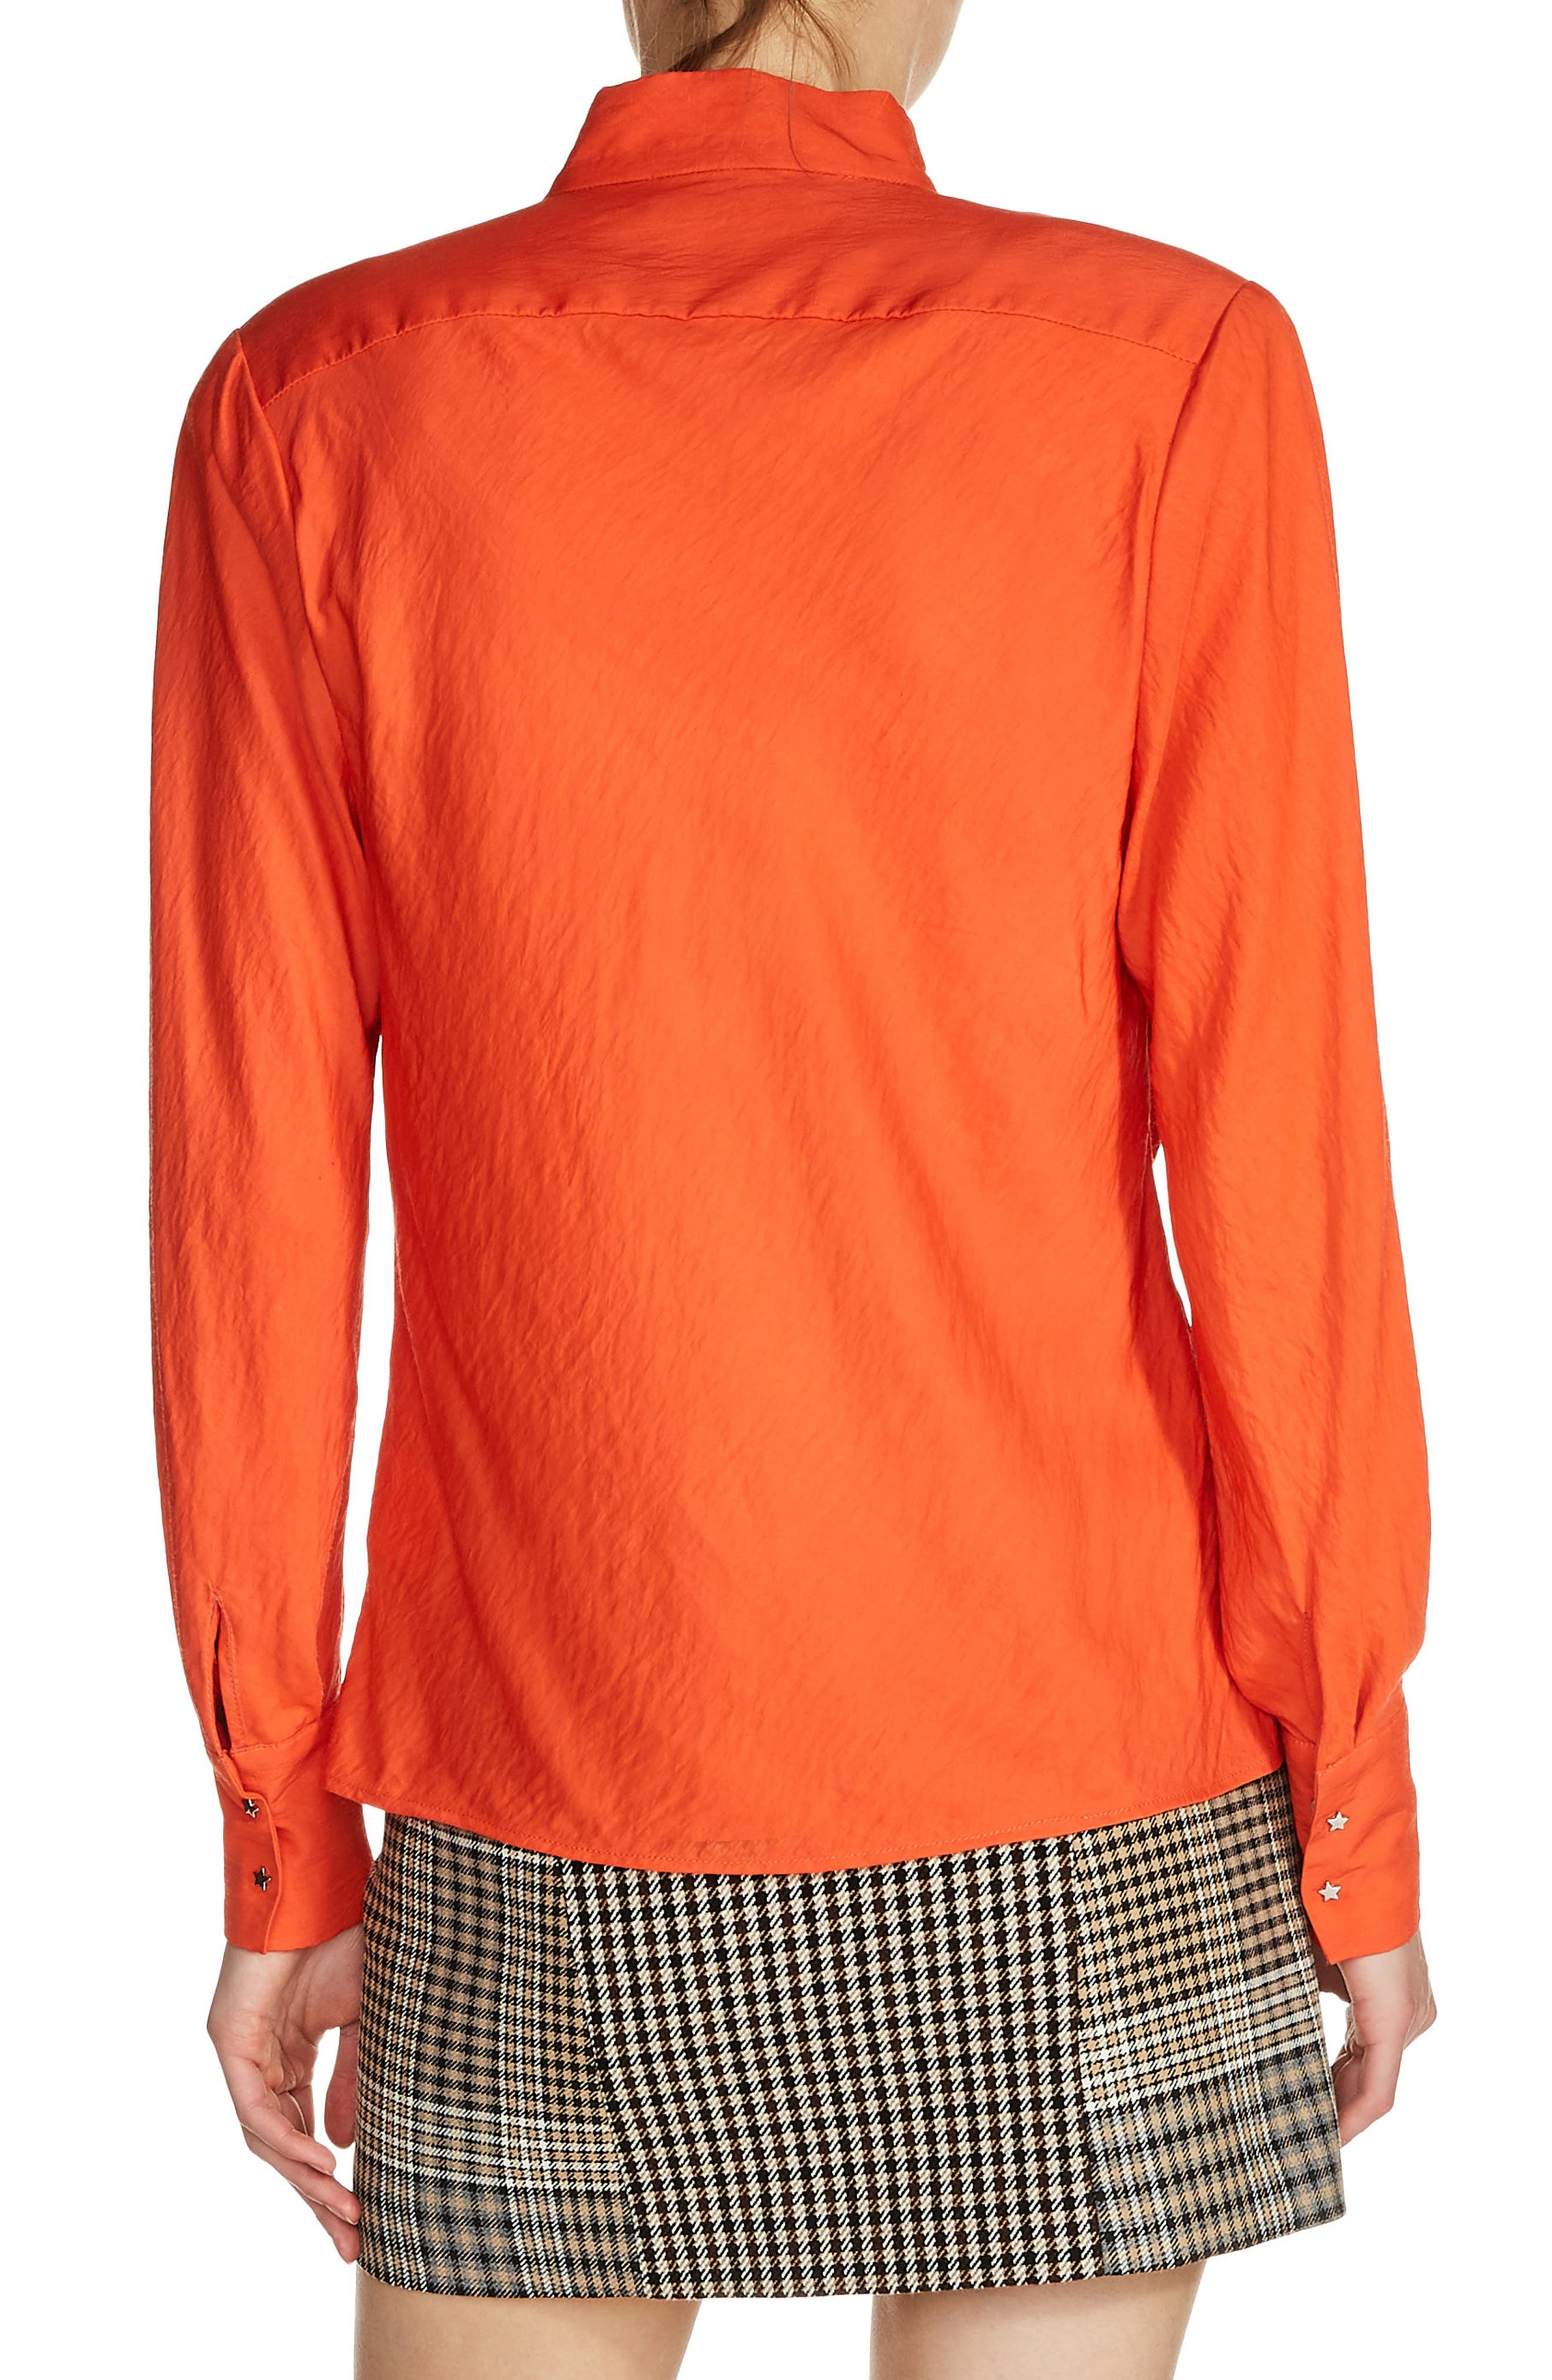 Star Snap Stand Collar Blouse,                             Alternate thumbnail 2, color,                             801